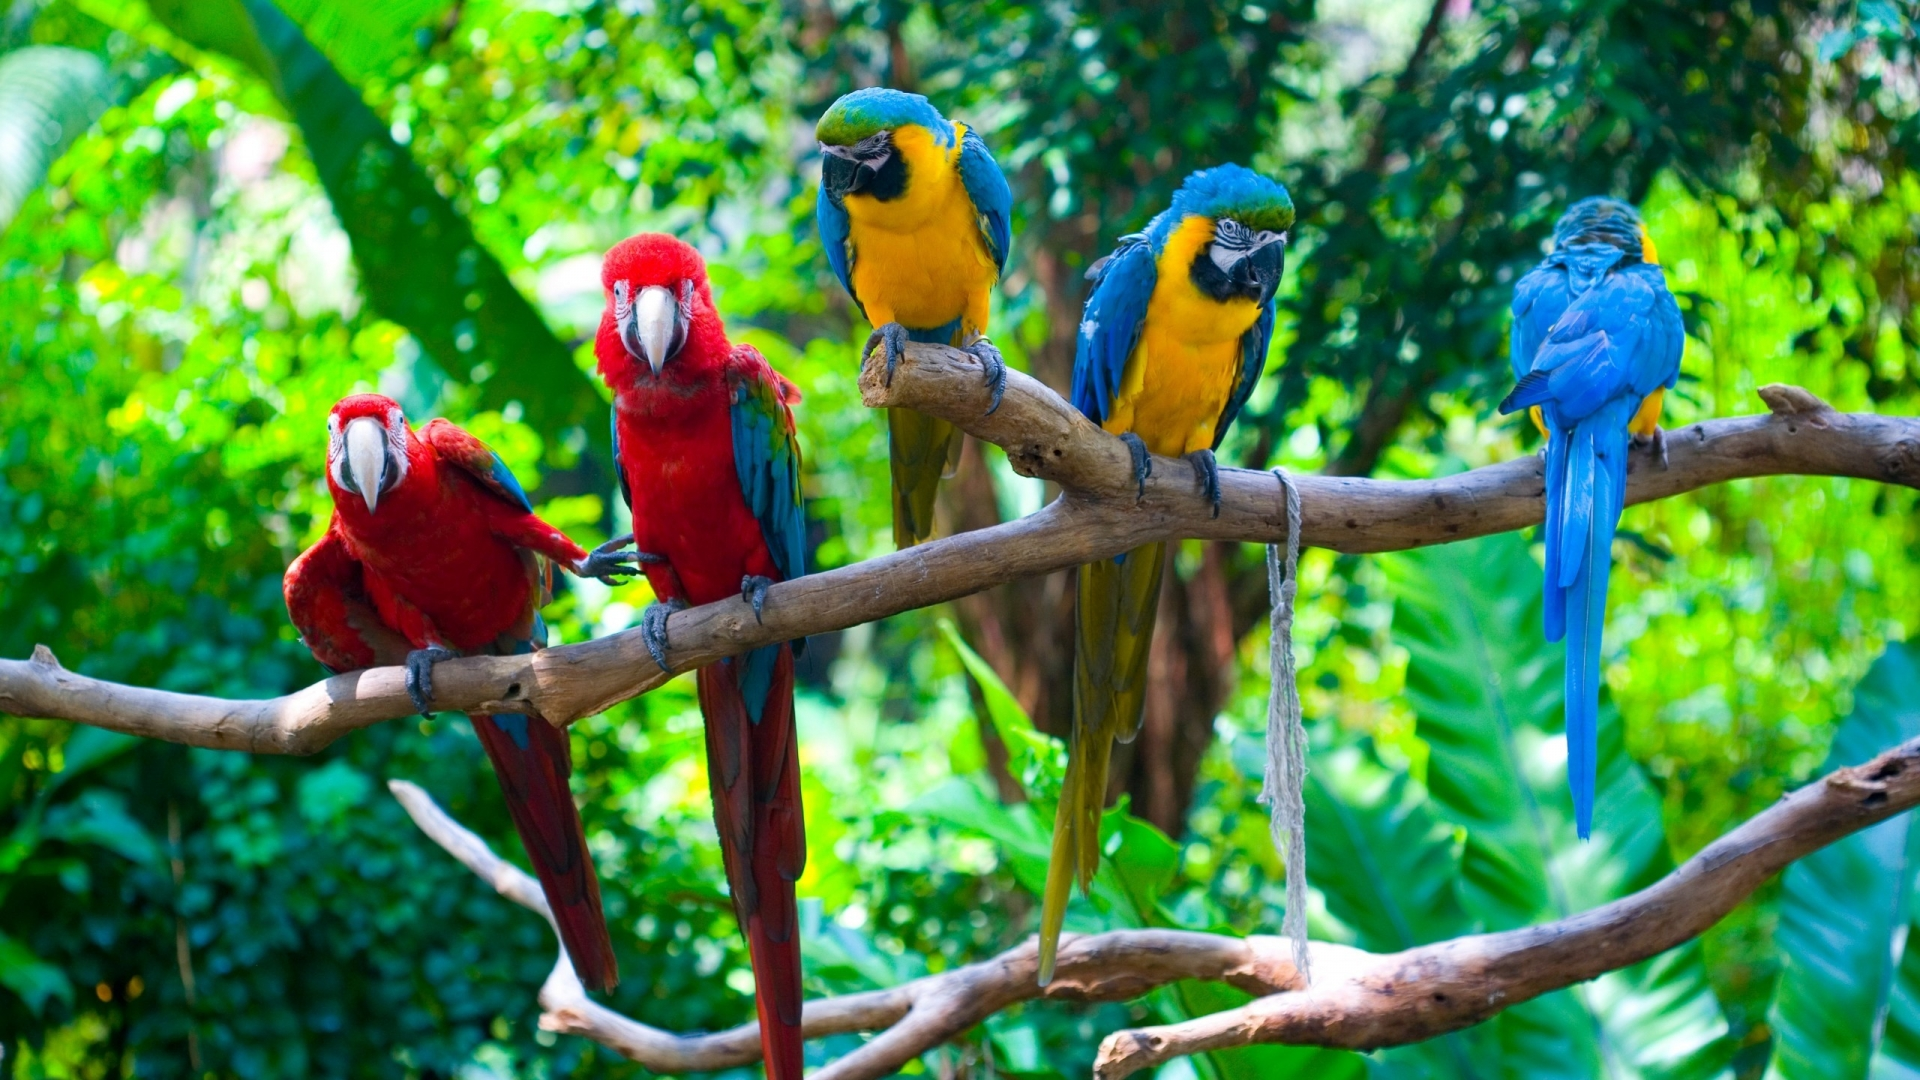 Many Colorful Parrots On A Tree Branch Wallpaper Download